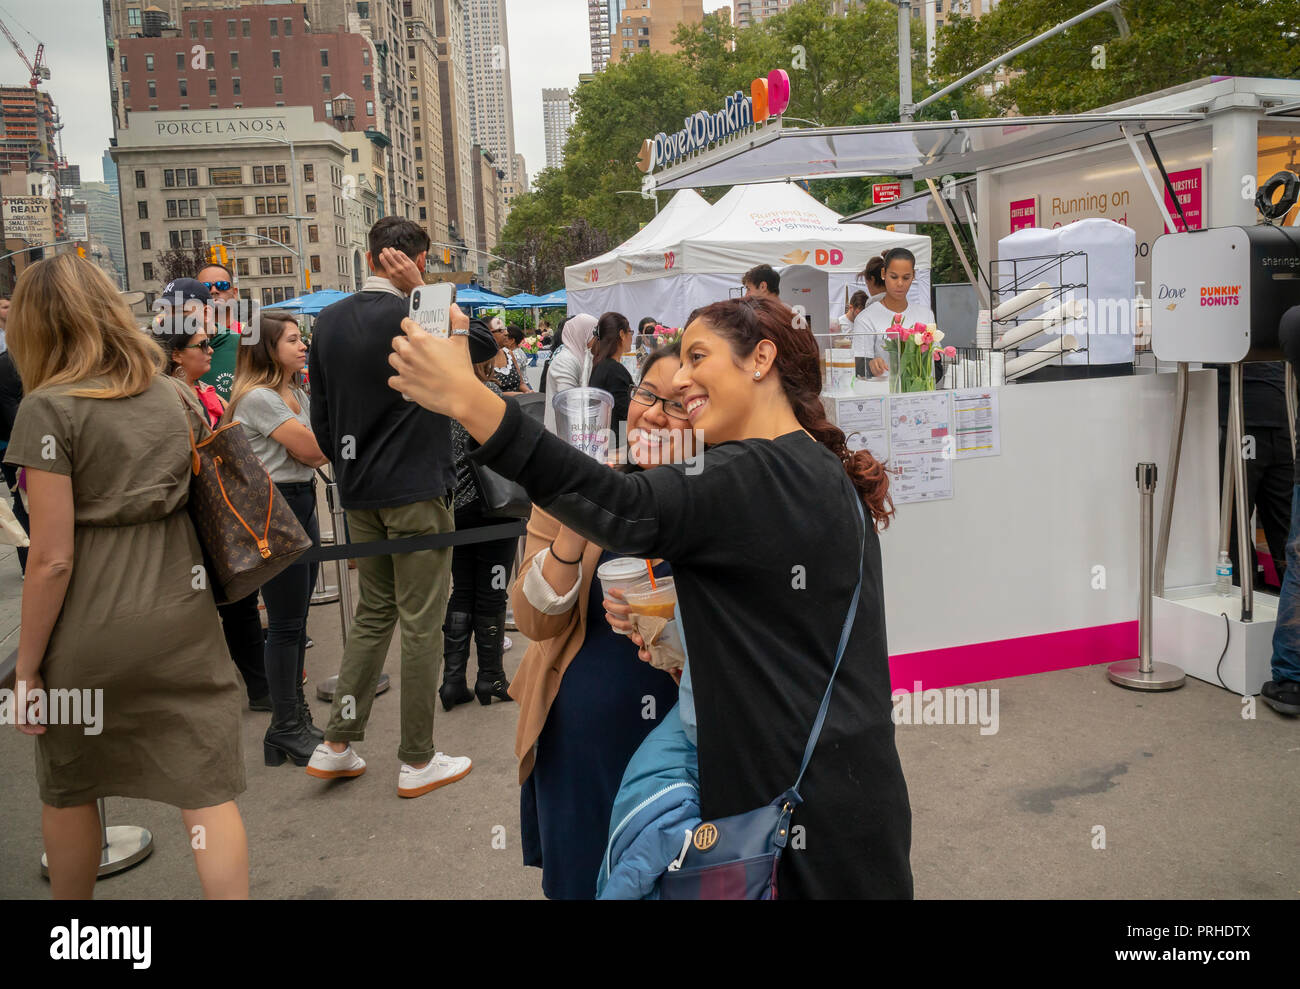 Millennials pose for a selfie at the Dunkin' and Dove collaboration branding event in Flatiron Plaza in New York on Monday, October 1, 2018. Visitors were treated to free cups of coffee and samples of Unilever's Dove brand dry shampoo. Apparently, according to the organizers women run on Dunkin' and dry shampoo enabling them to quickly get up and out in the morning. Dunkin' Brands recently changed their name dropping the 'donuts' moniker to better reflect that 60 percent of their sales are coffee beverages. (© Richard B. Levine) - Stock Image